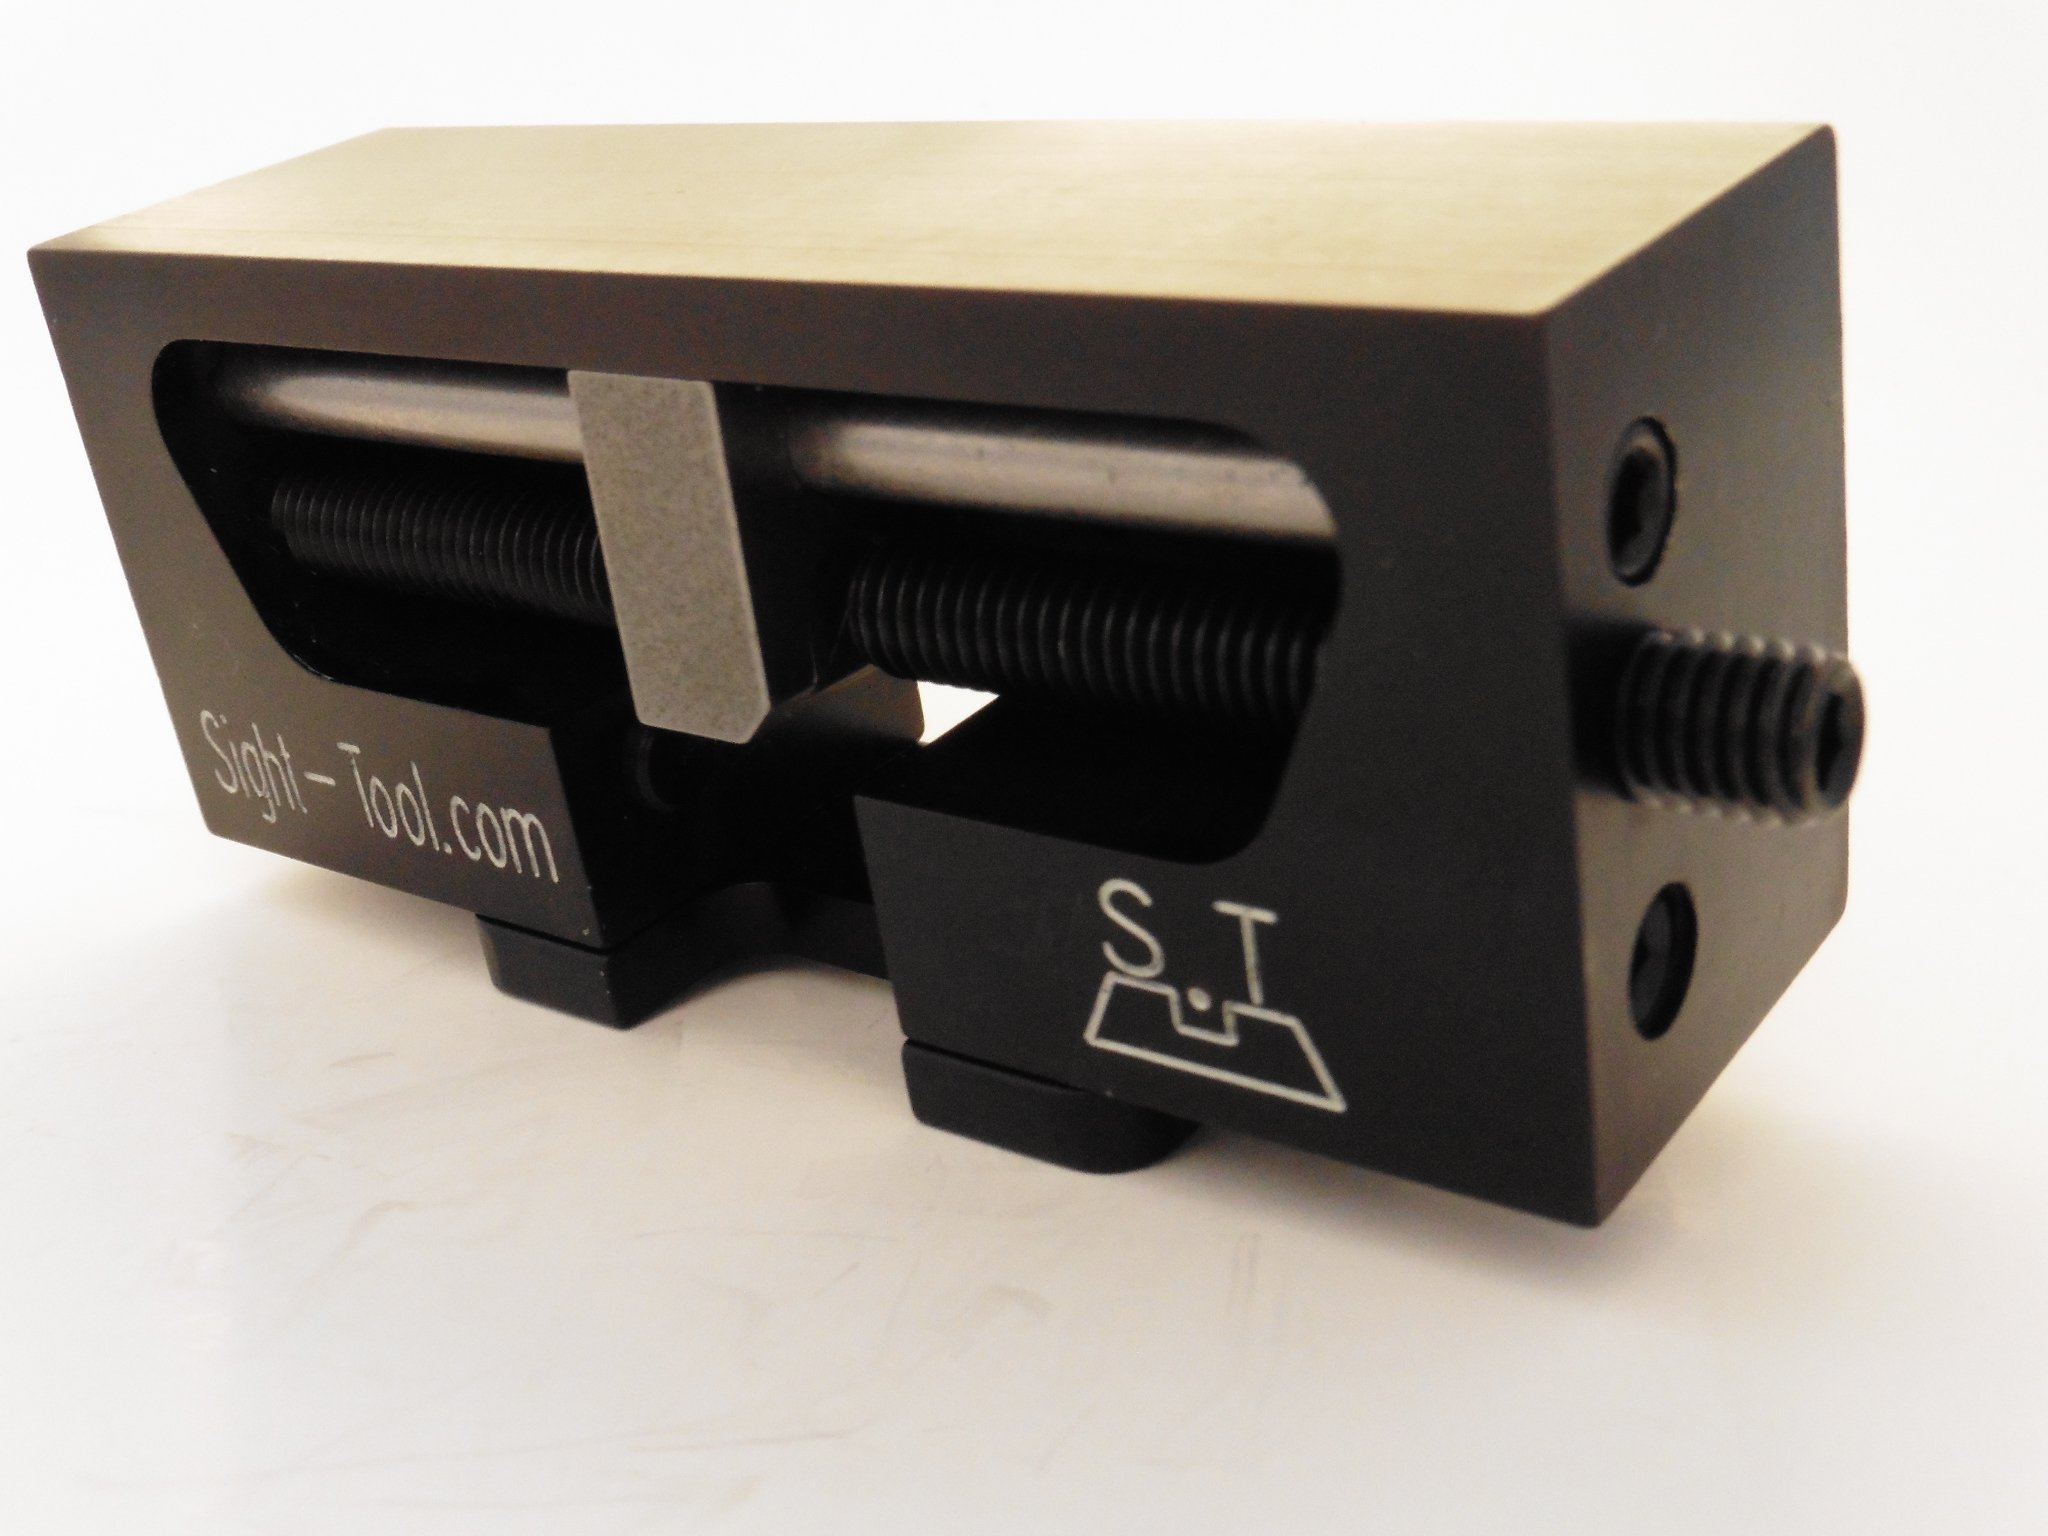 Universal Handgun Sight Pusher Tool for 1911 Sig springfield and others* Best tool on the market for front or rear sights* MADE IN USA by sight-tool.com (Image #4)